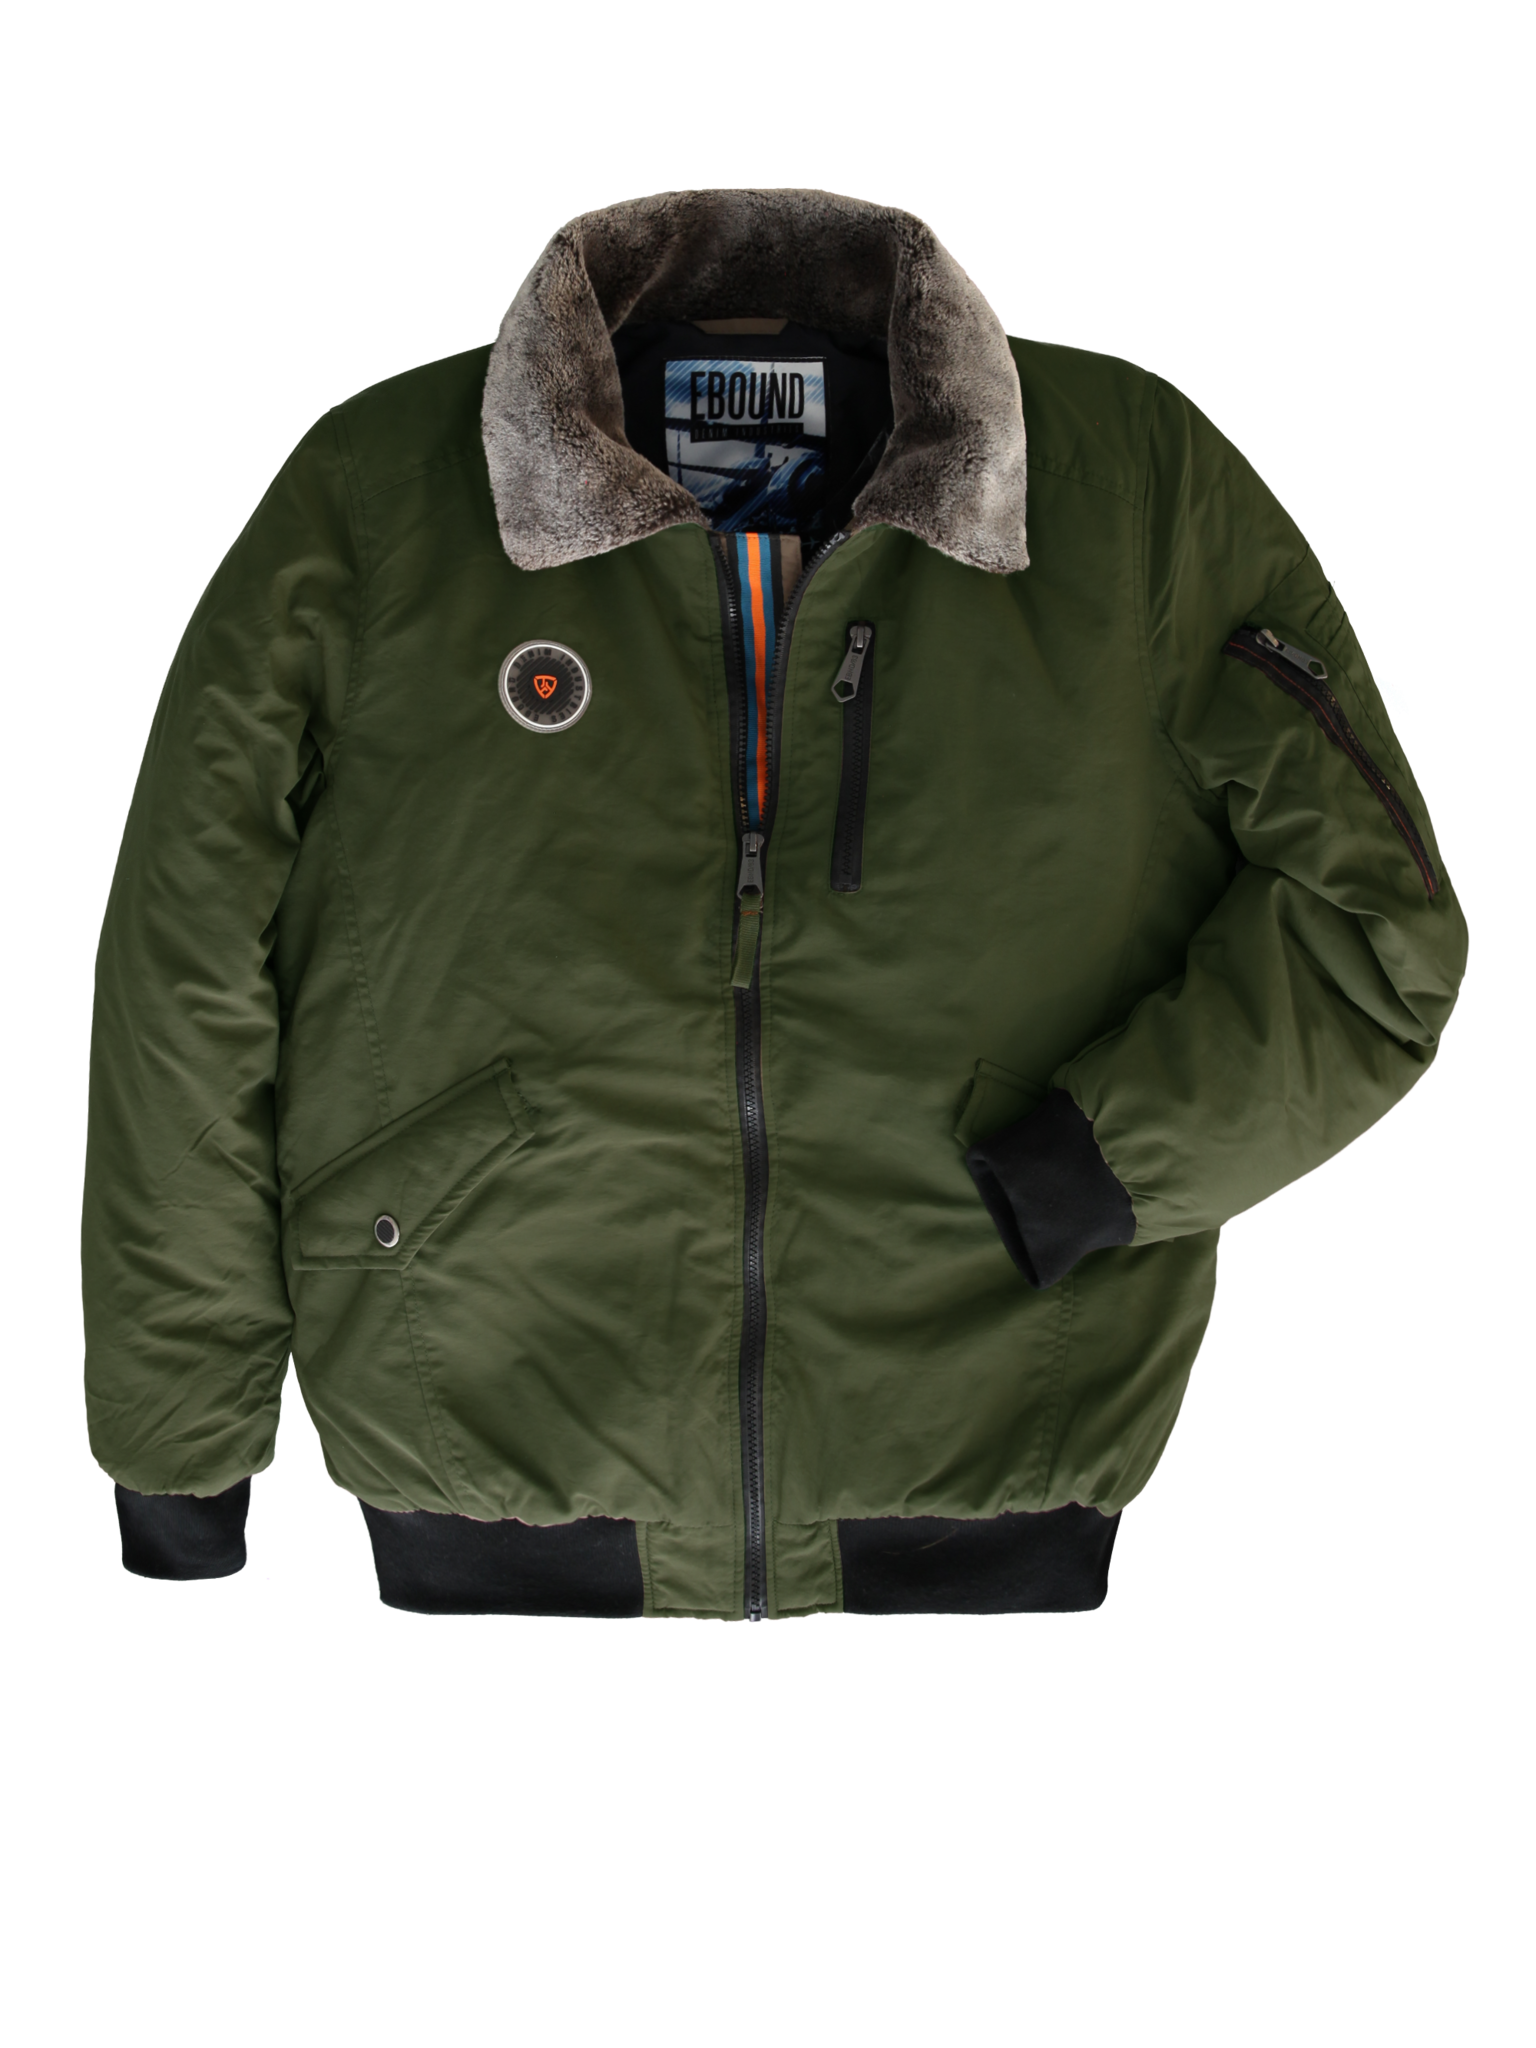 All Brands | Winterproducts Men | Jacket | 12 pcs/box